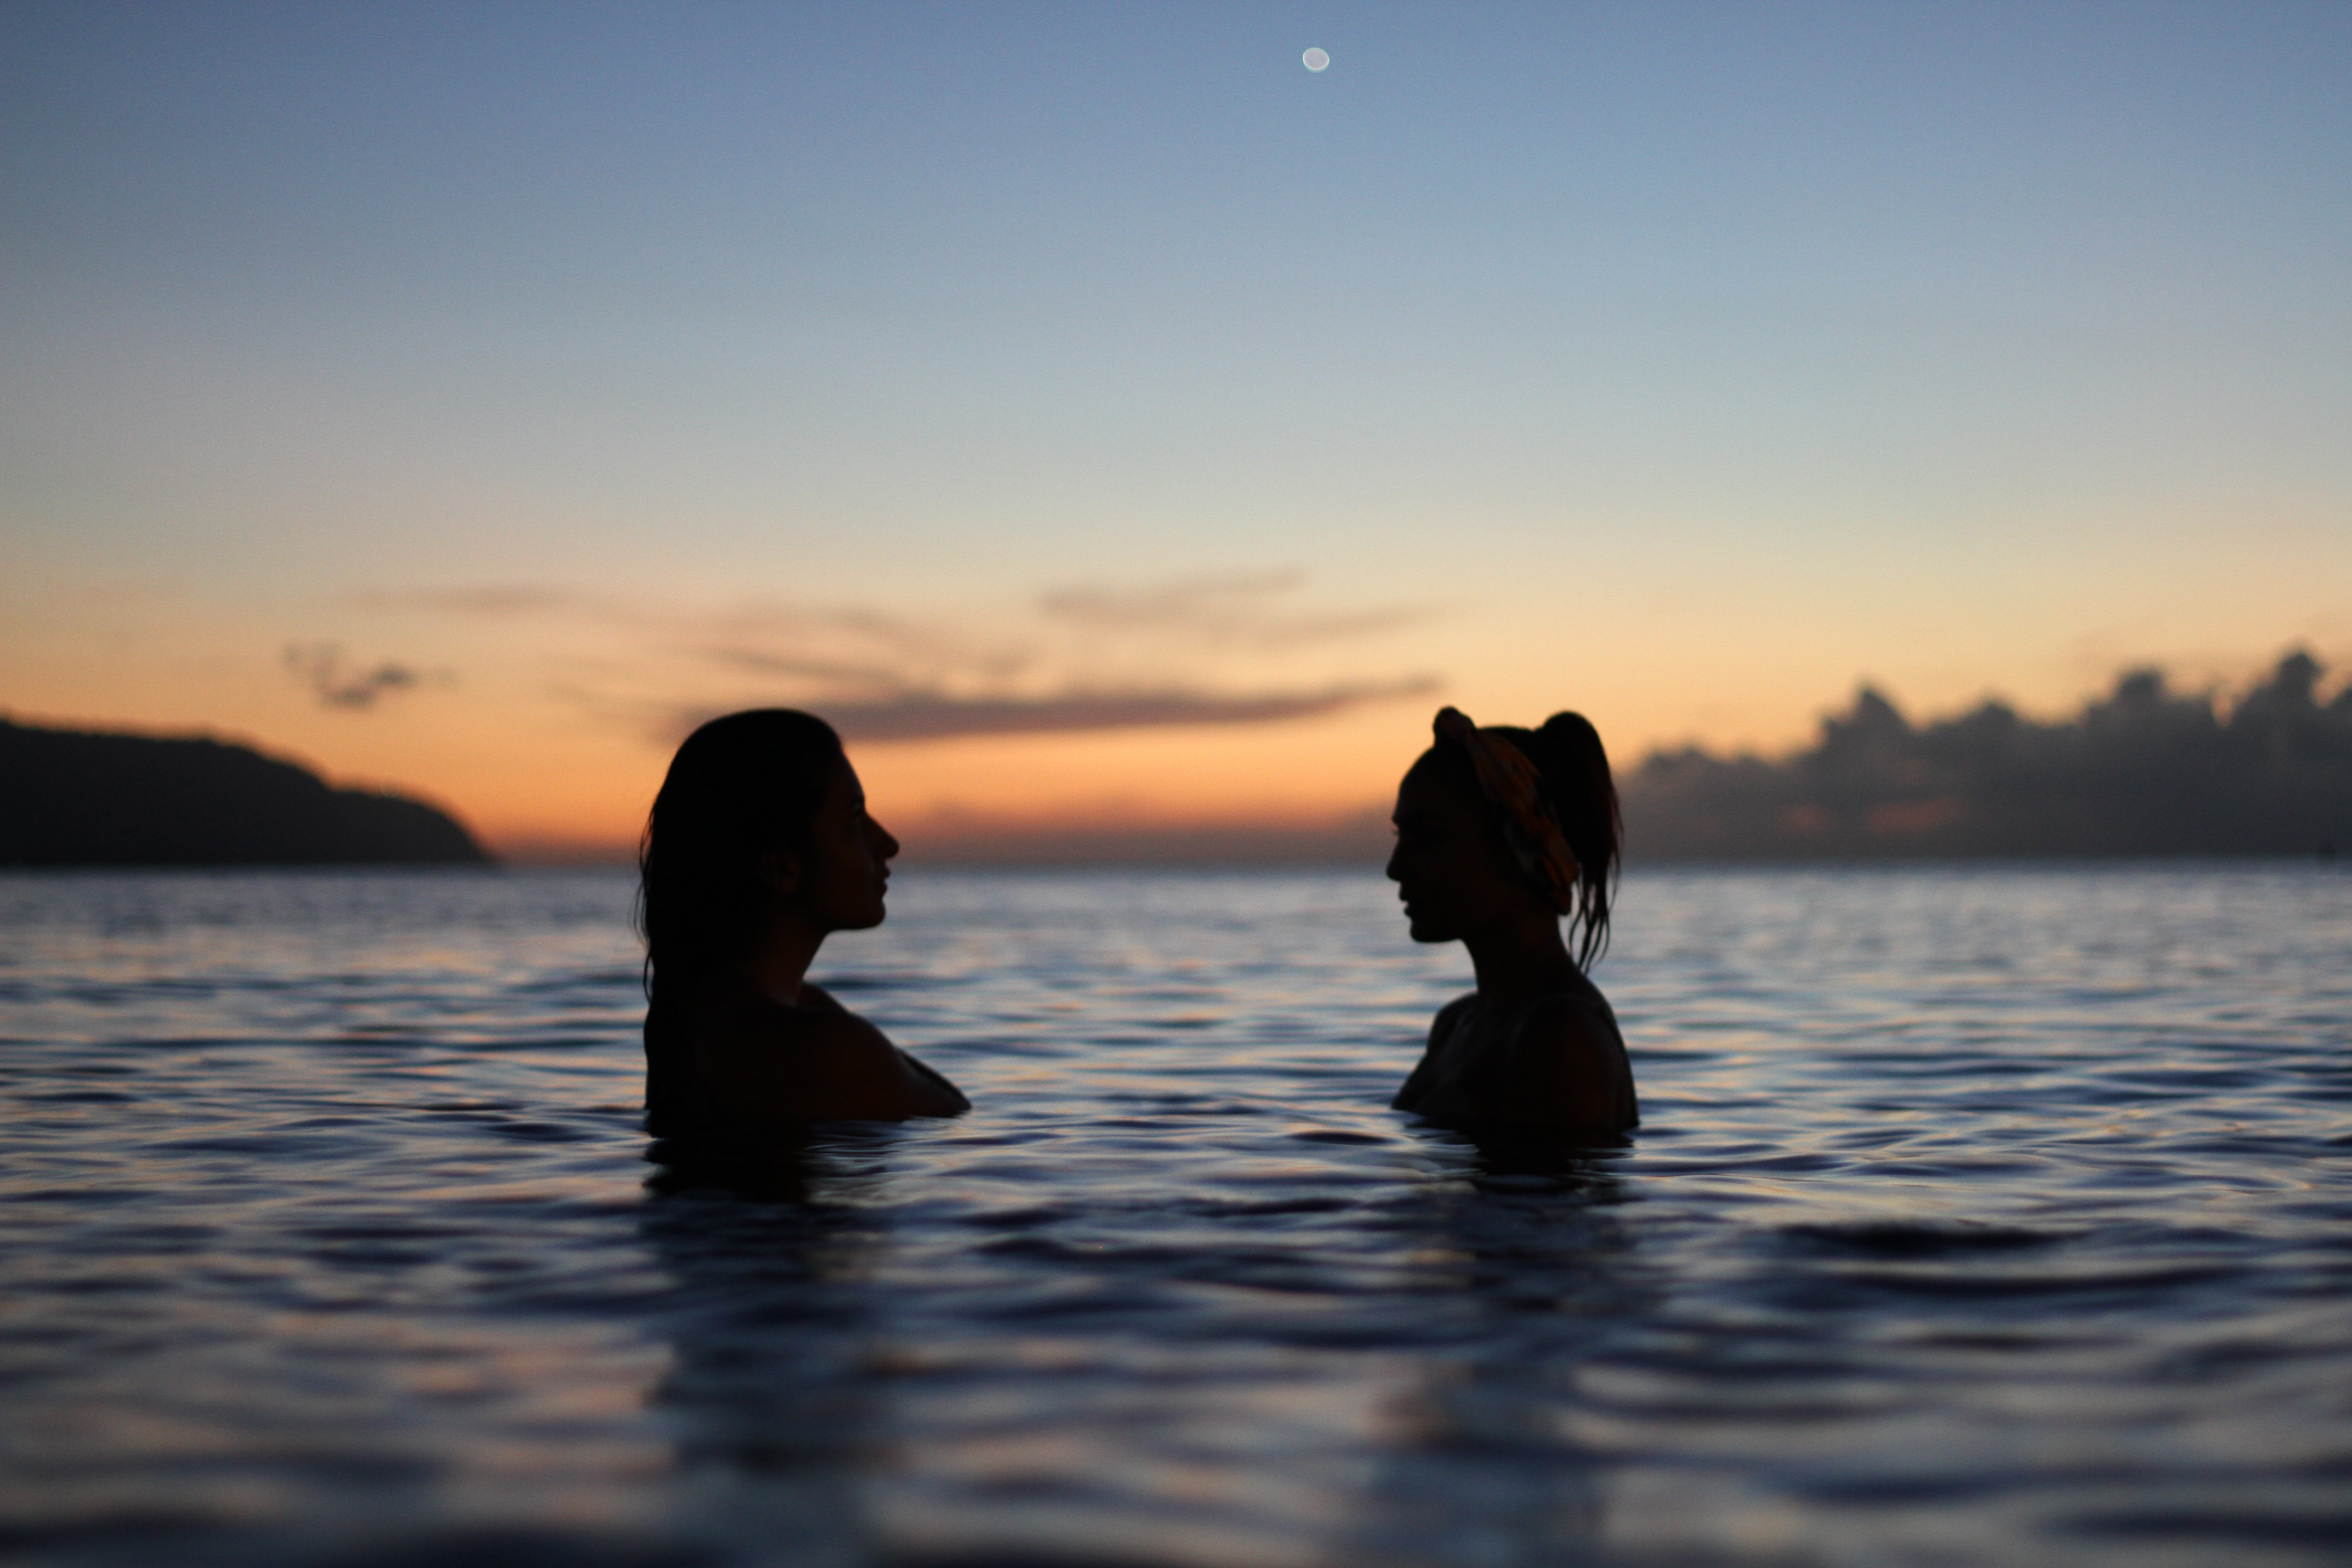 Silhouette of two women facing each other while standing in the waters of sunset Haleiwa beach